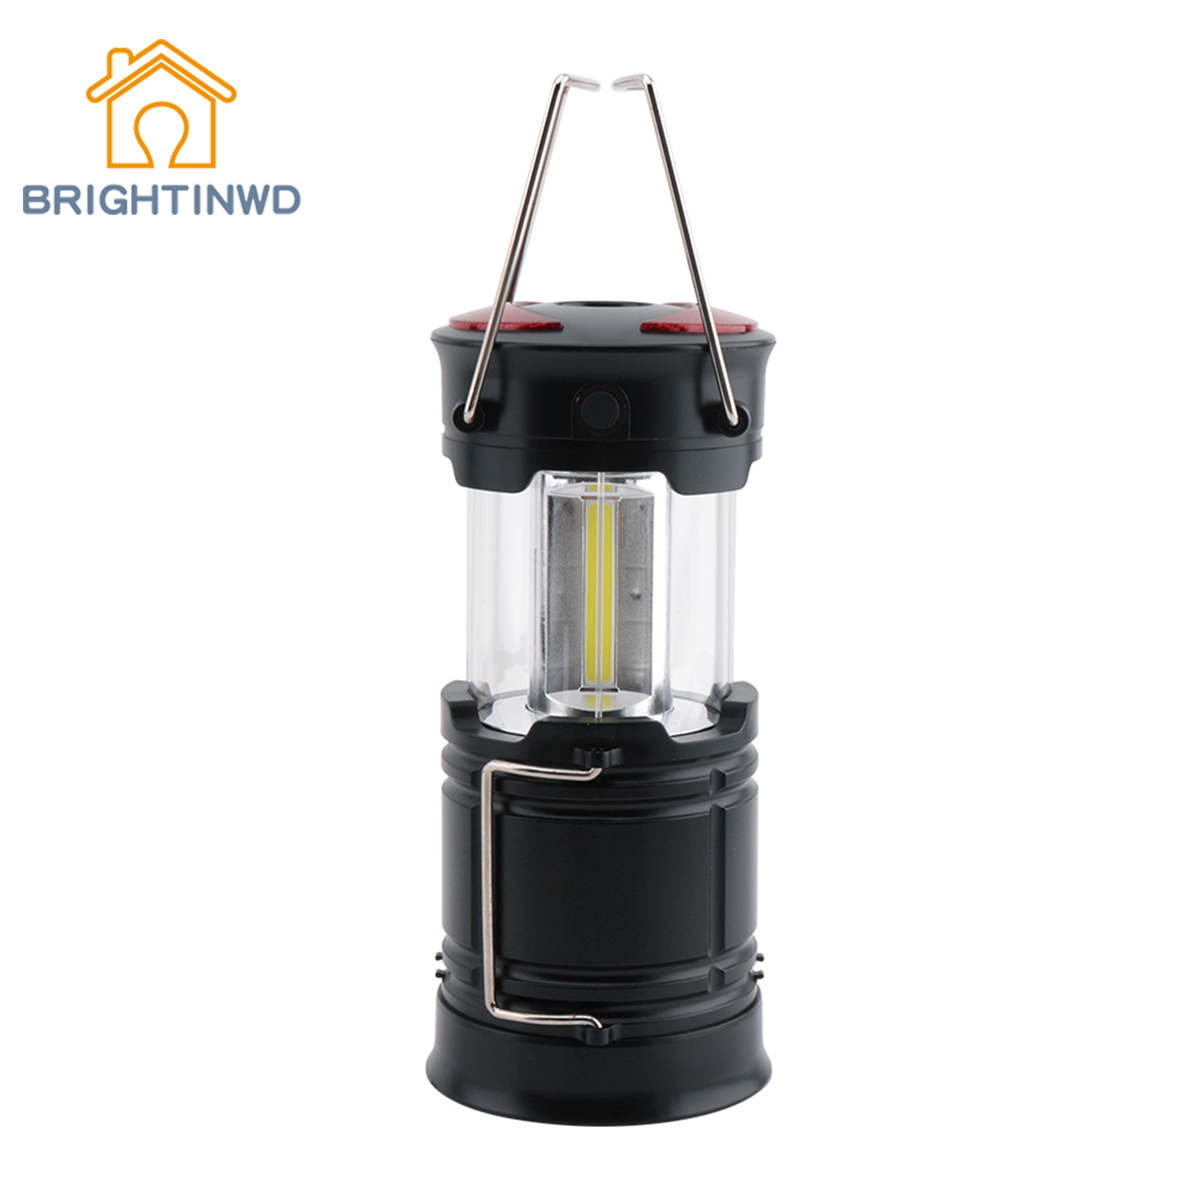 BRIGHTINWD Camping Lantern COB LED Tent Light Ultra Bright Portable Camping Light Outdoor Hanging Light with Magnet Camping Lamp